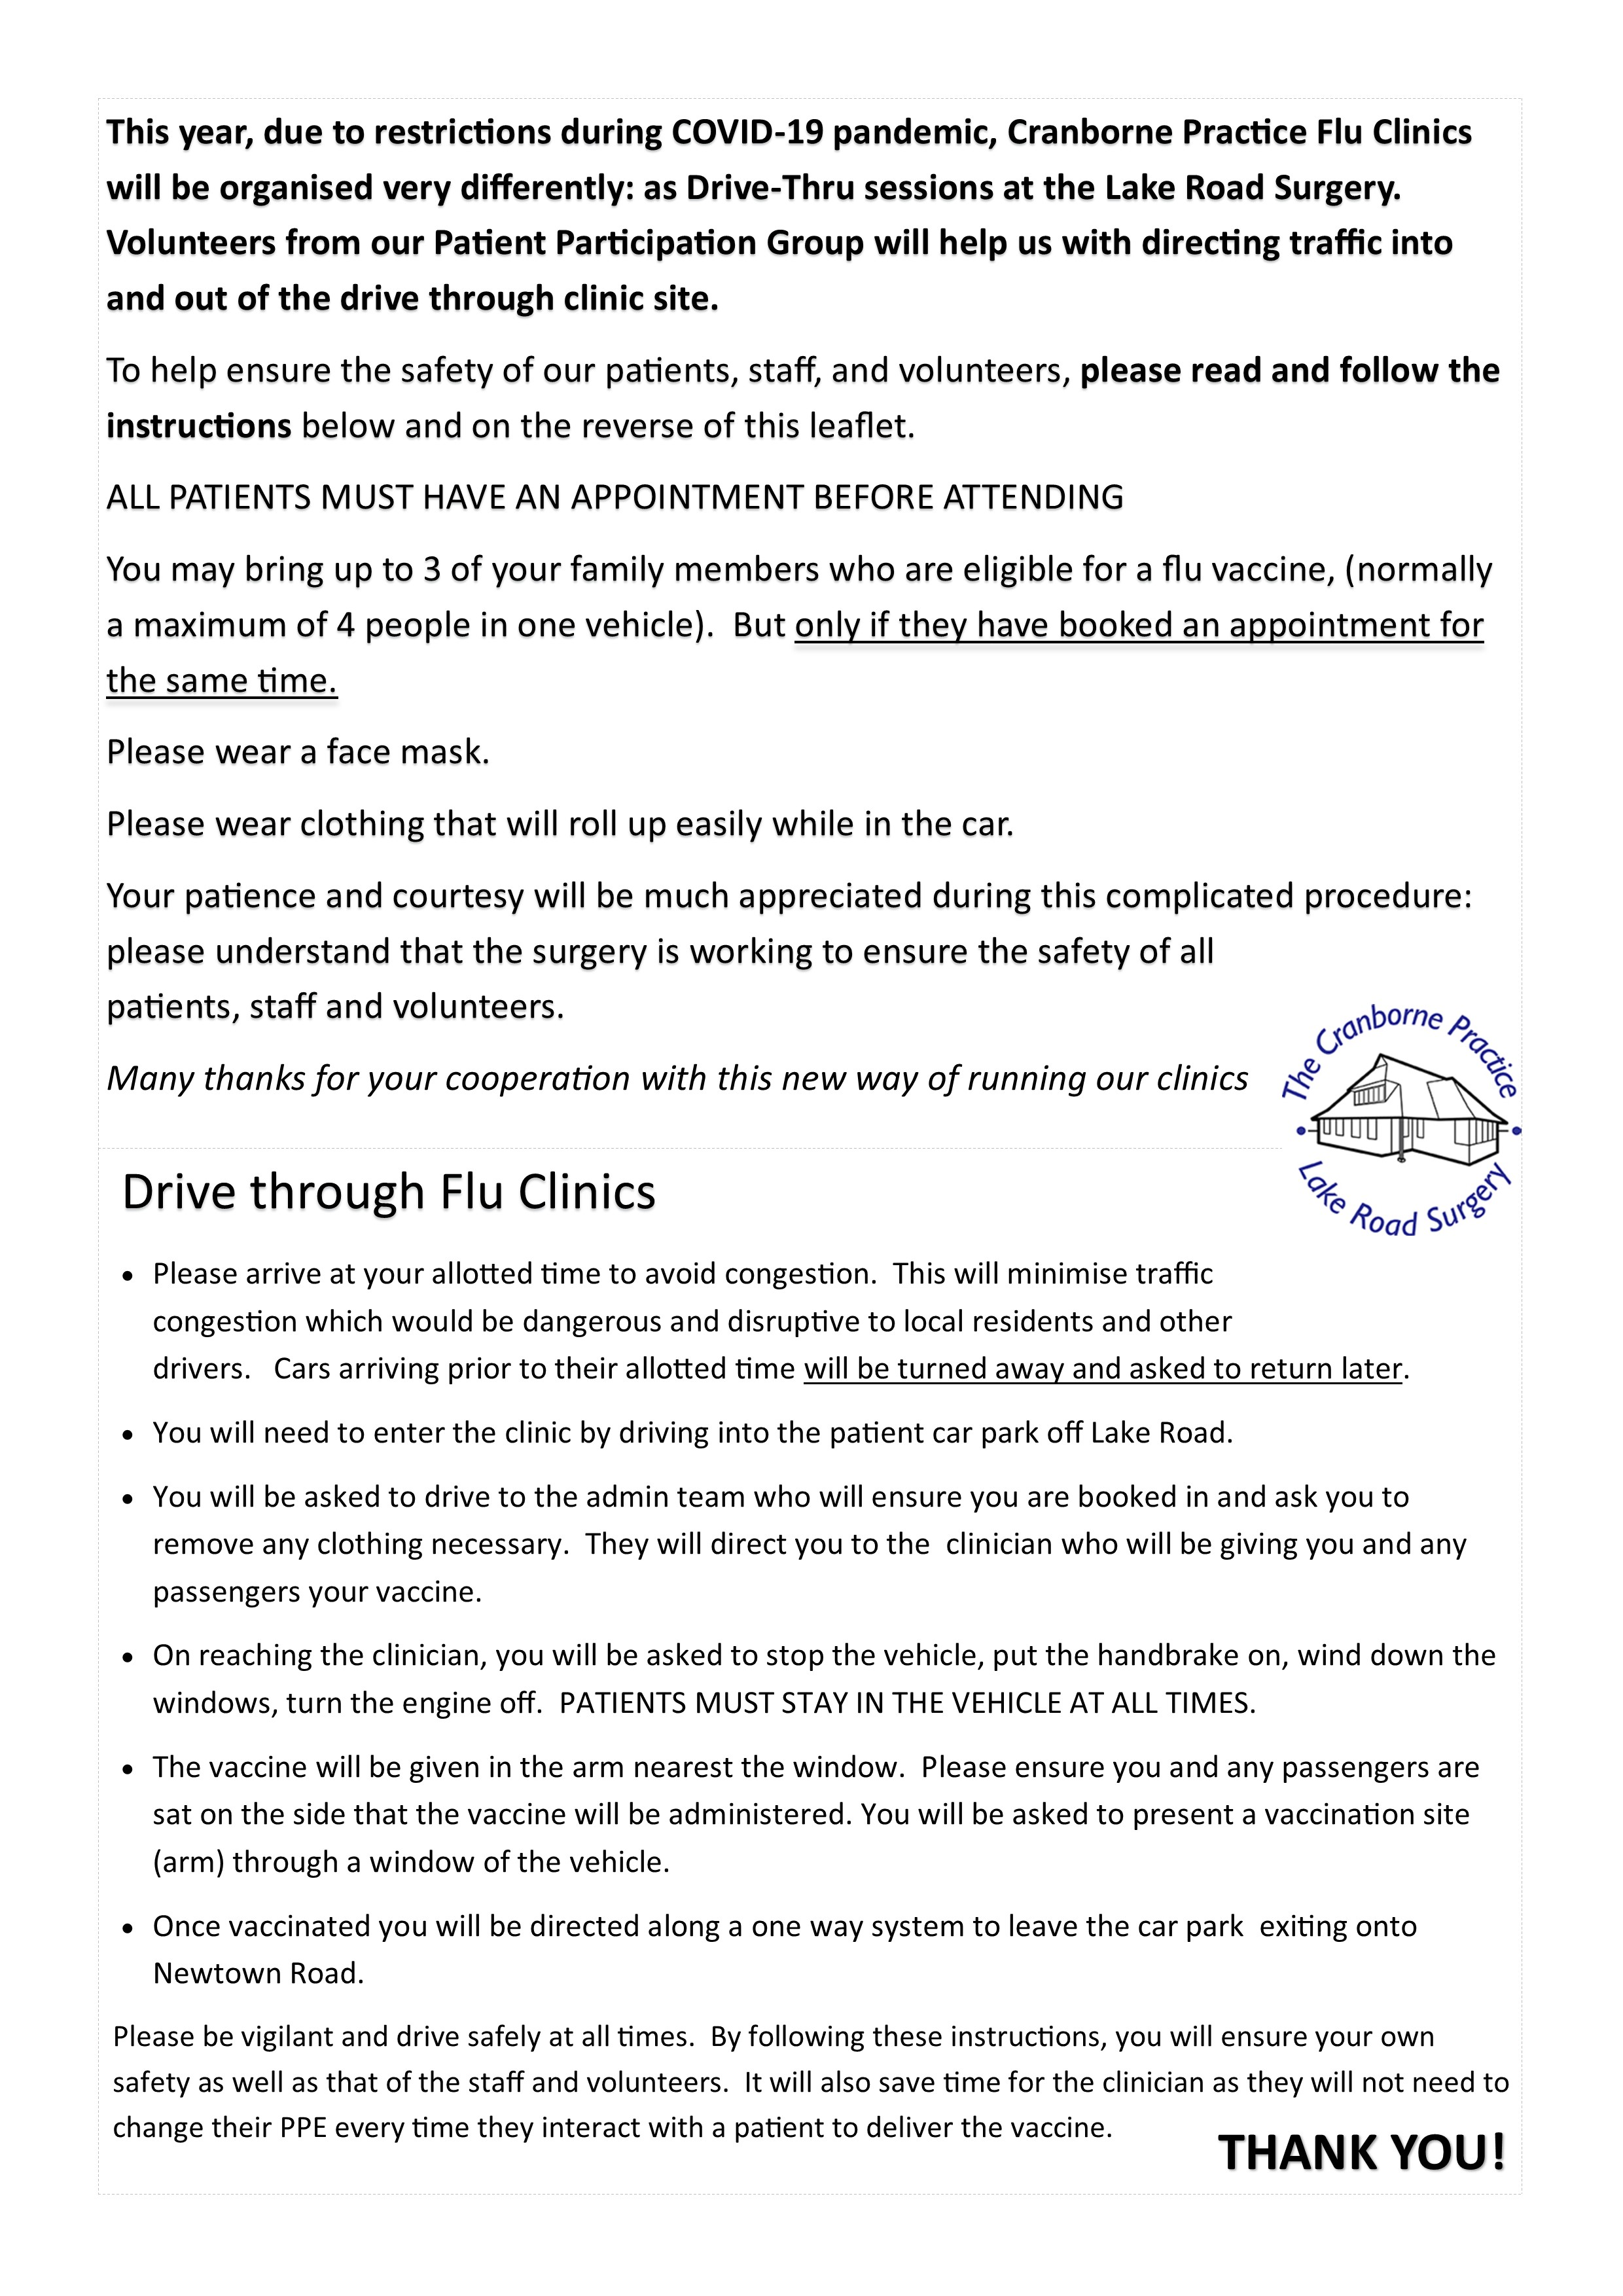 Drive through flu clinic arrangements - October 4th, 2020